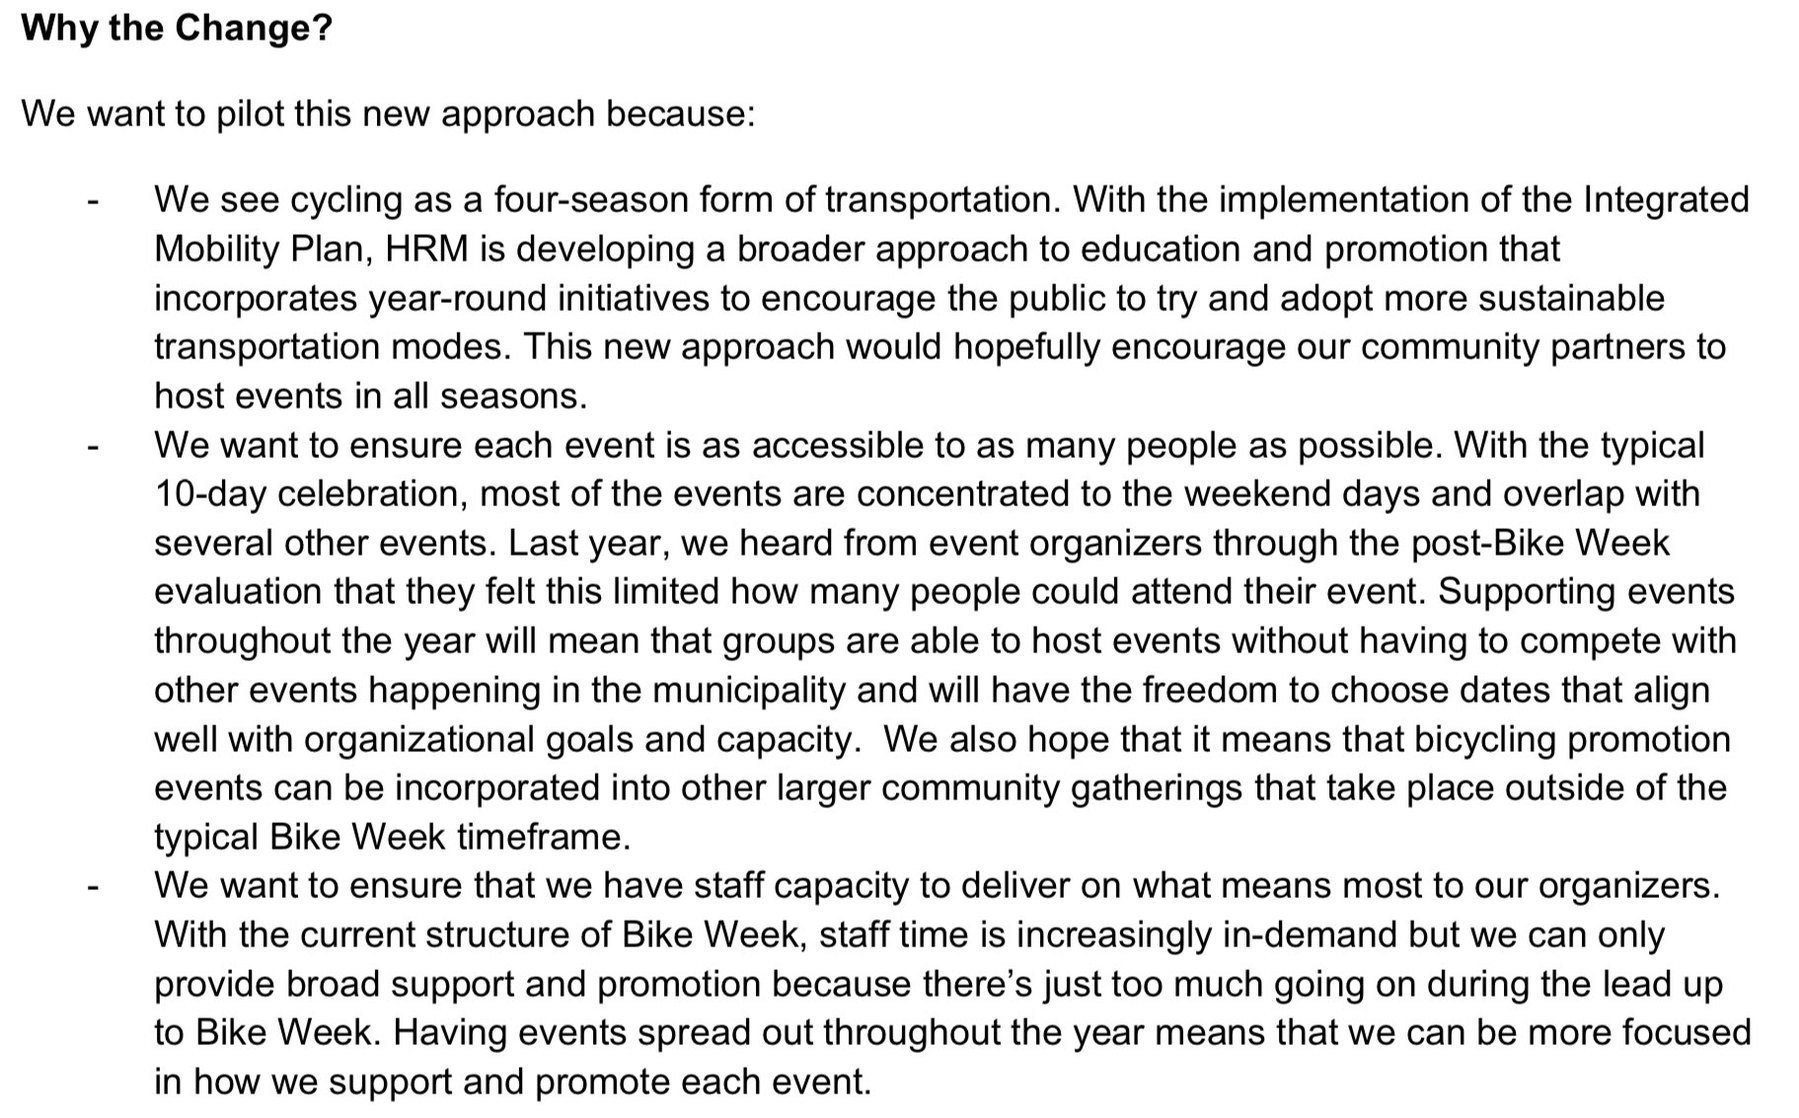 Why the Change? We want to pilot this new approach because:  We see cycling as a four-season form of transportation. With the implementation of the Integrated Mobility Plan, HRM is developing a broader approach to education and promotion that incorporates year-round initiatives to encourage the public to try and adopt more sustainable transportation modes. This new approach would hopefully encourage our community partners to host events in all seasons. - We want to ensure each event is as accessible to as many people as possible. With the typical 10-day celebration, most of the events are concentrated to the weekend days and overlap with several other events. Last year, we heard from event organizers through the post-Bike Week evaluation that they felt this limited how many people could attend their event. Supporting events throughout the year will mean that groups are able to host events without having to compete with other events happening in the municipality and will have the freedom to choose dates that align well with organizational goals and capacity. We also hope that it means that bicycling promotion events can be incorporated into other larger community gatherings that take place outside of the typical Bike Week timeframe. - We want to ensure that we have staff capacity to deliver on what means most to our organizers. With the current structure of Bike Week, staff time is increasingly in-demand but we can only provide broad support and promotion because there's just too much going on during the lead up to Bike Week. Having events spread out throughout the year means that we can be more focused in how we support and promote each event